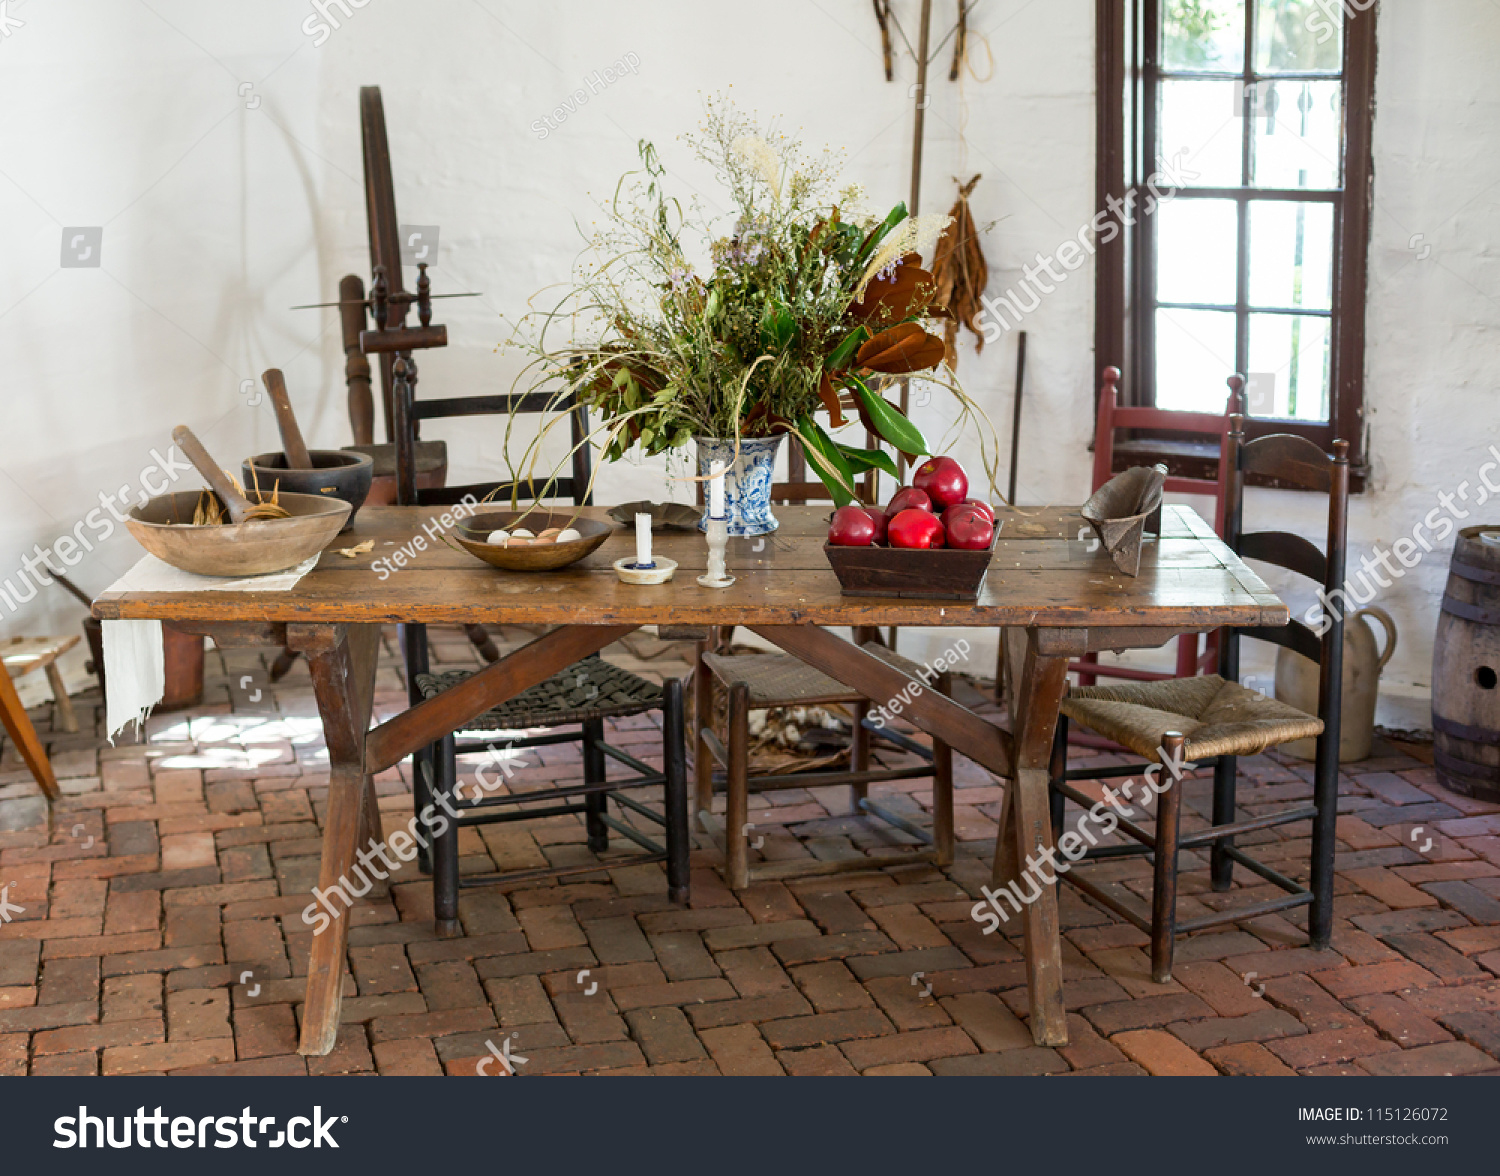 Colonial Kitchen Old Fashioned Colonial Kitchen Table Chairs Stock Photo 115126072